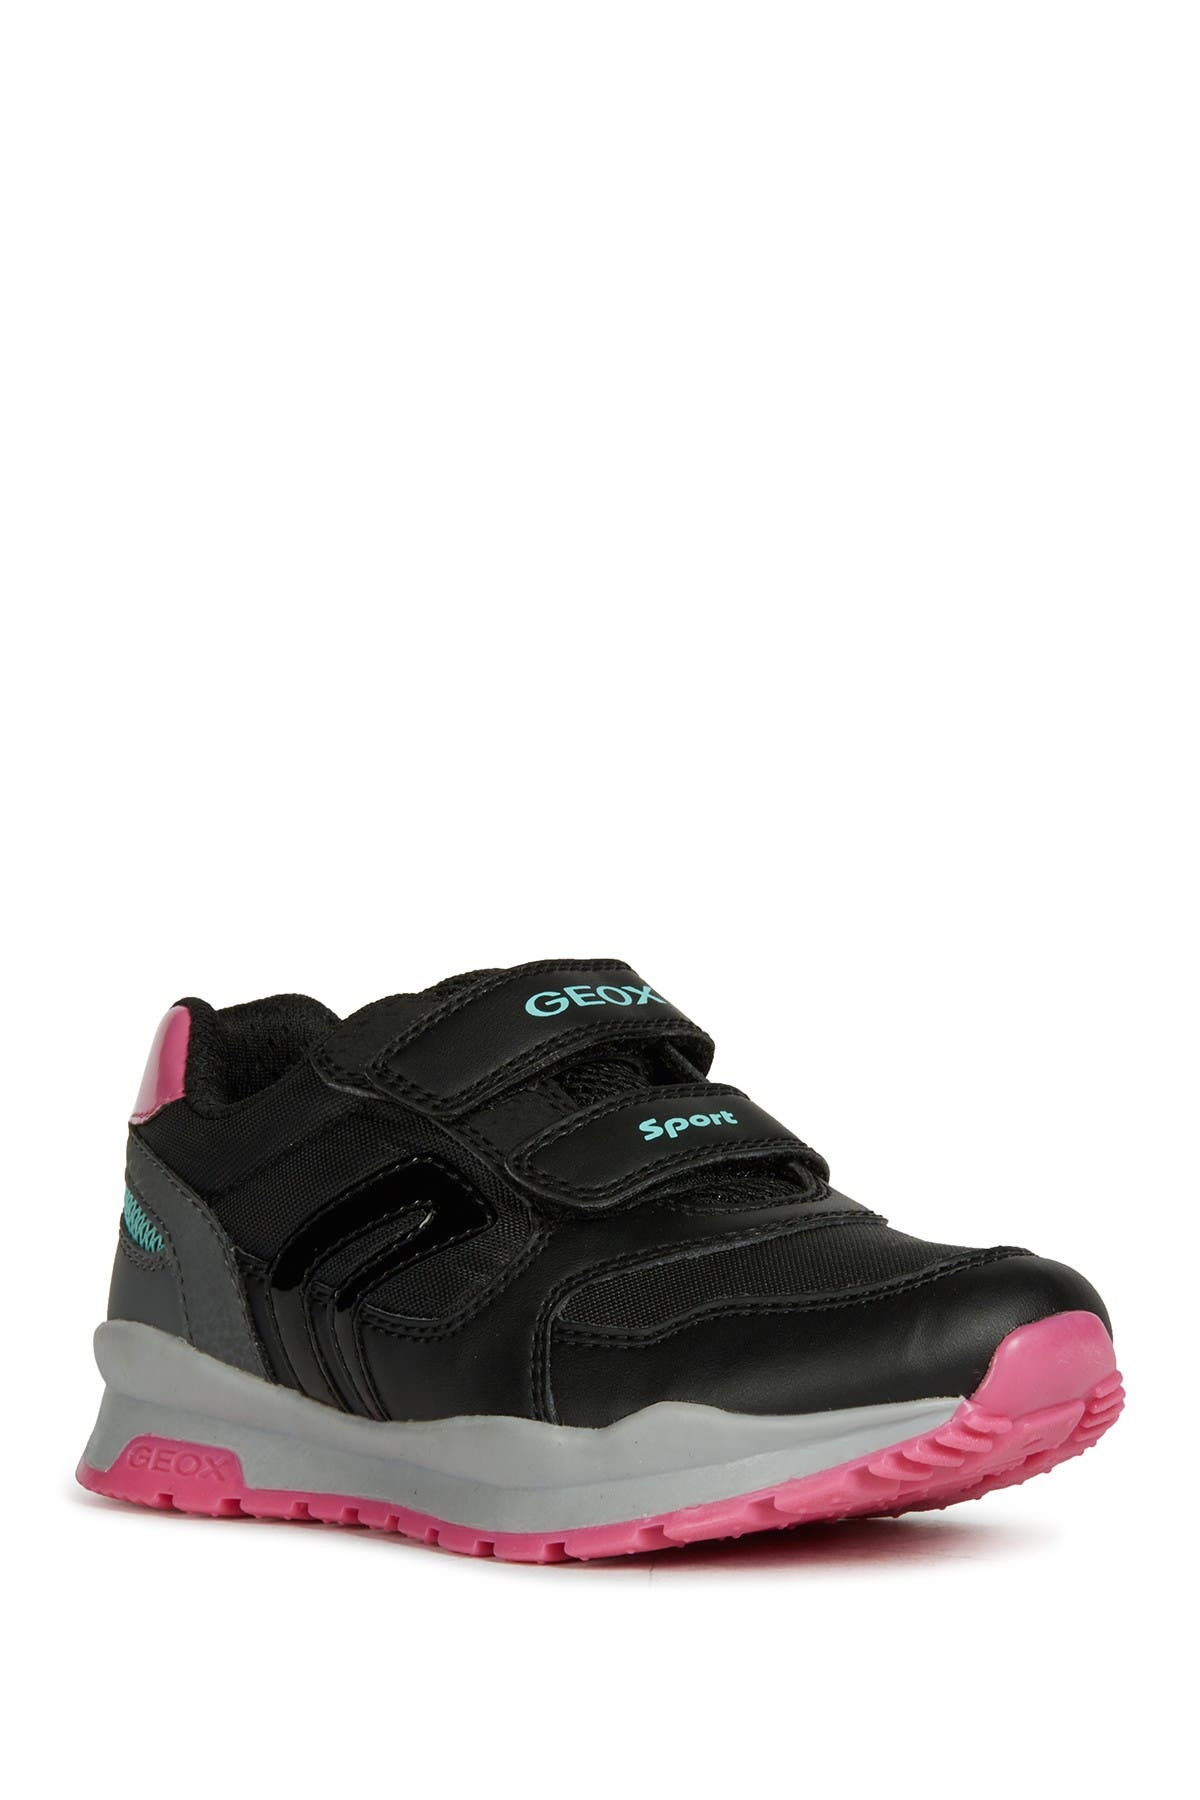 Image of GEOX Pavel Girl 7 Sneaker